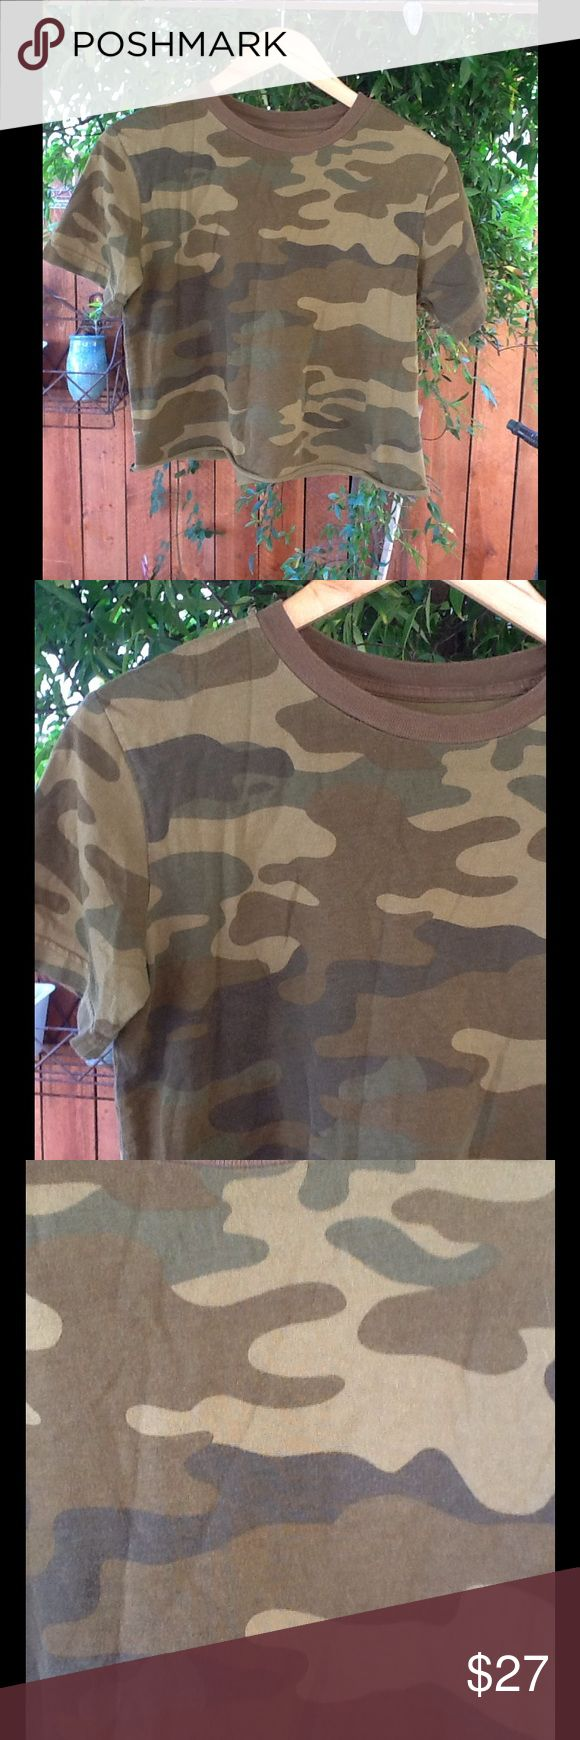 Design your own t shirt military - Crop T Shirt Camouflage Medium Women S Summer Altered Crop Military Style T Fits Most Women